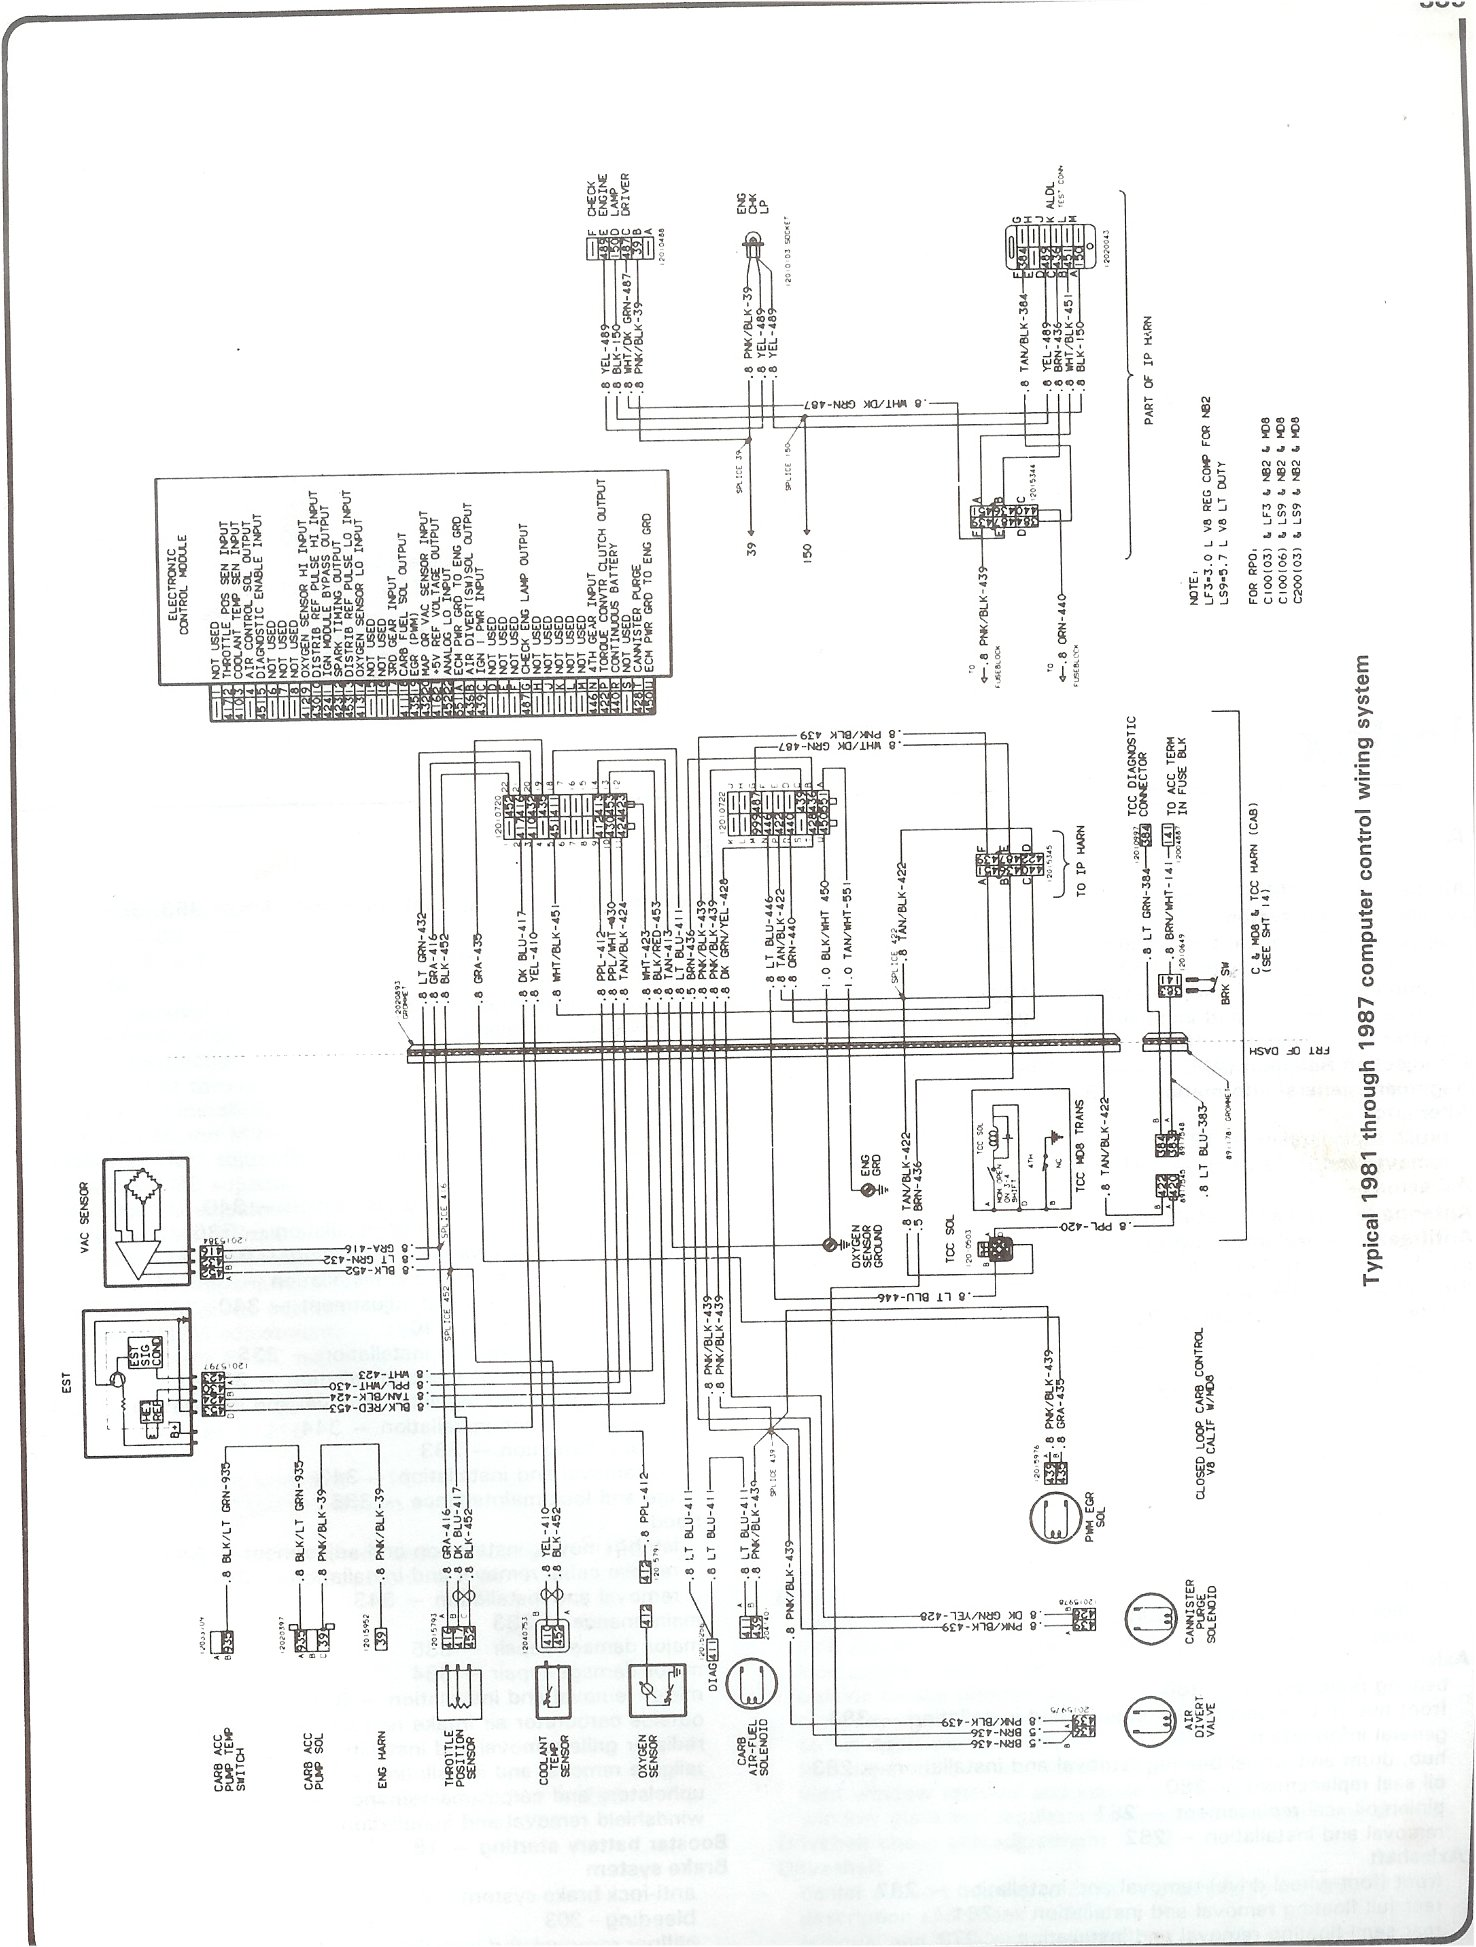 complete 73 87 wiring diagrams rh forum 73 87chevytrucks com 86 chevy engine wiring diagram chevy 5.3 engine wiring diagram